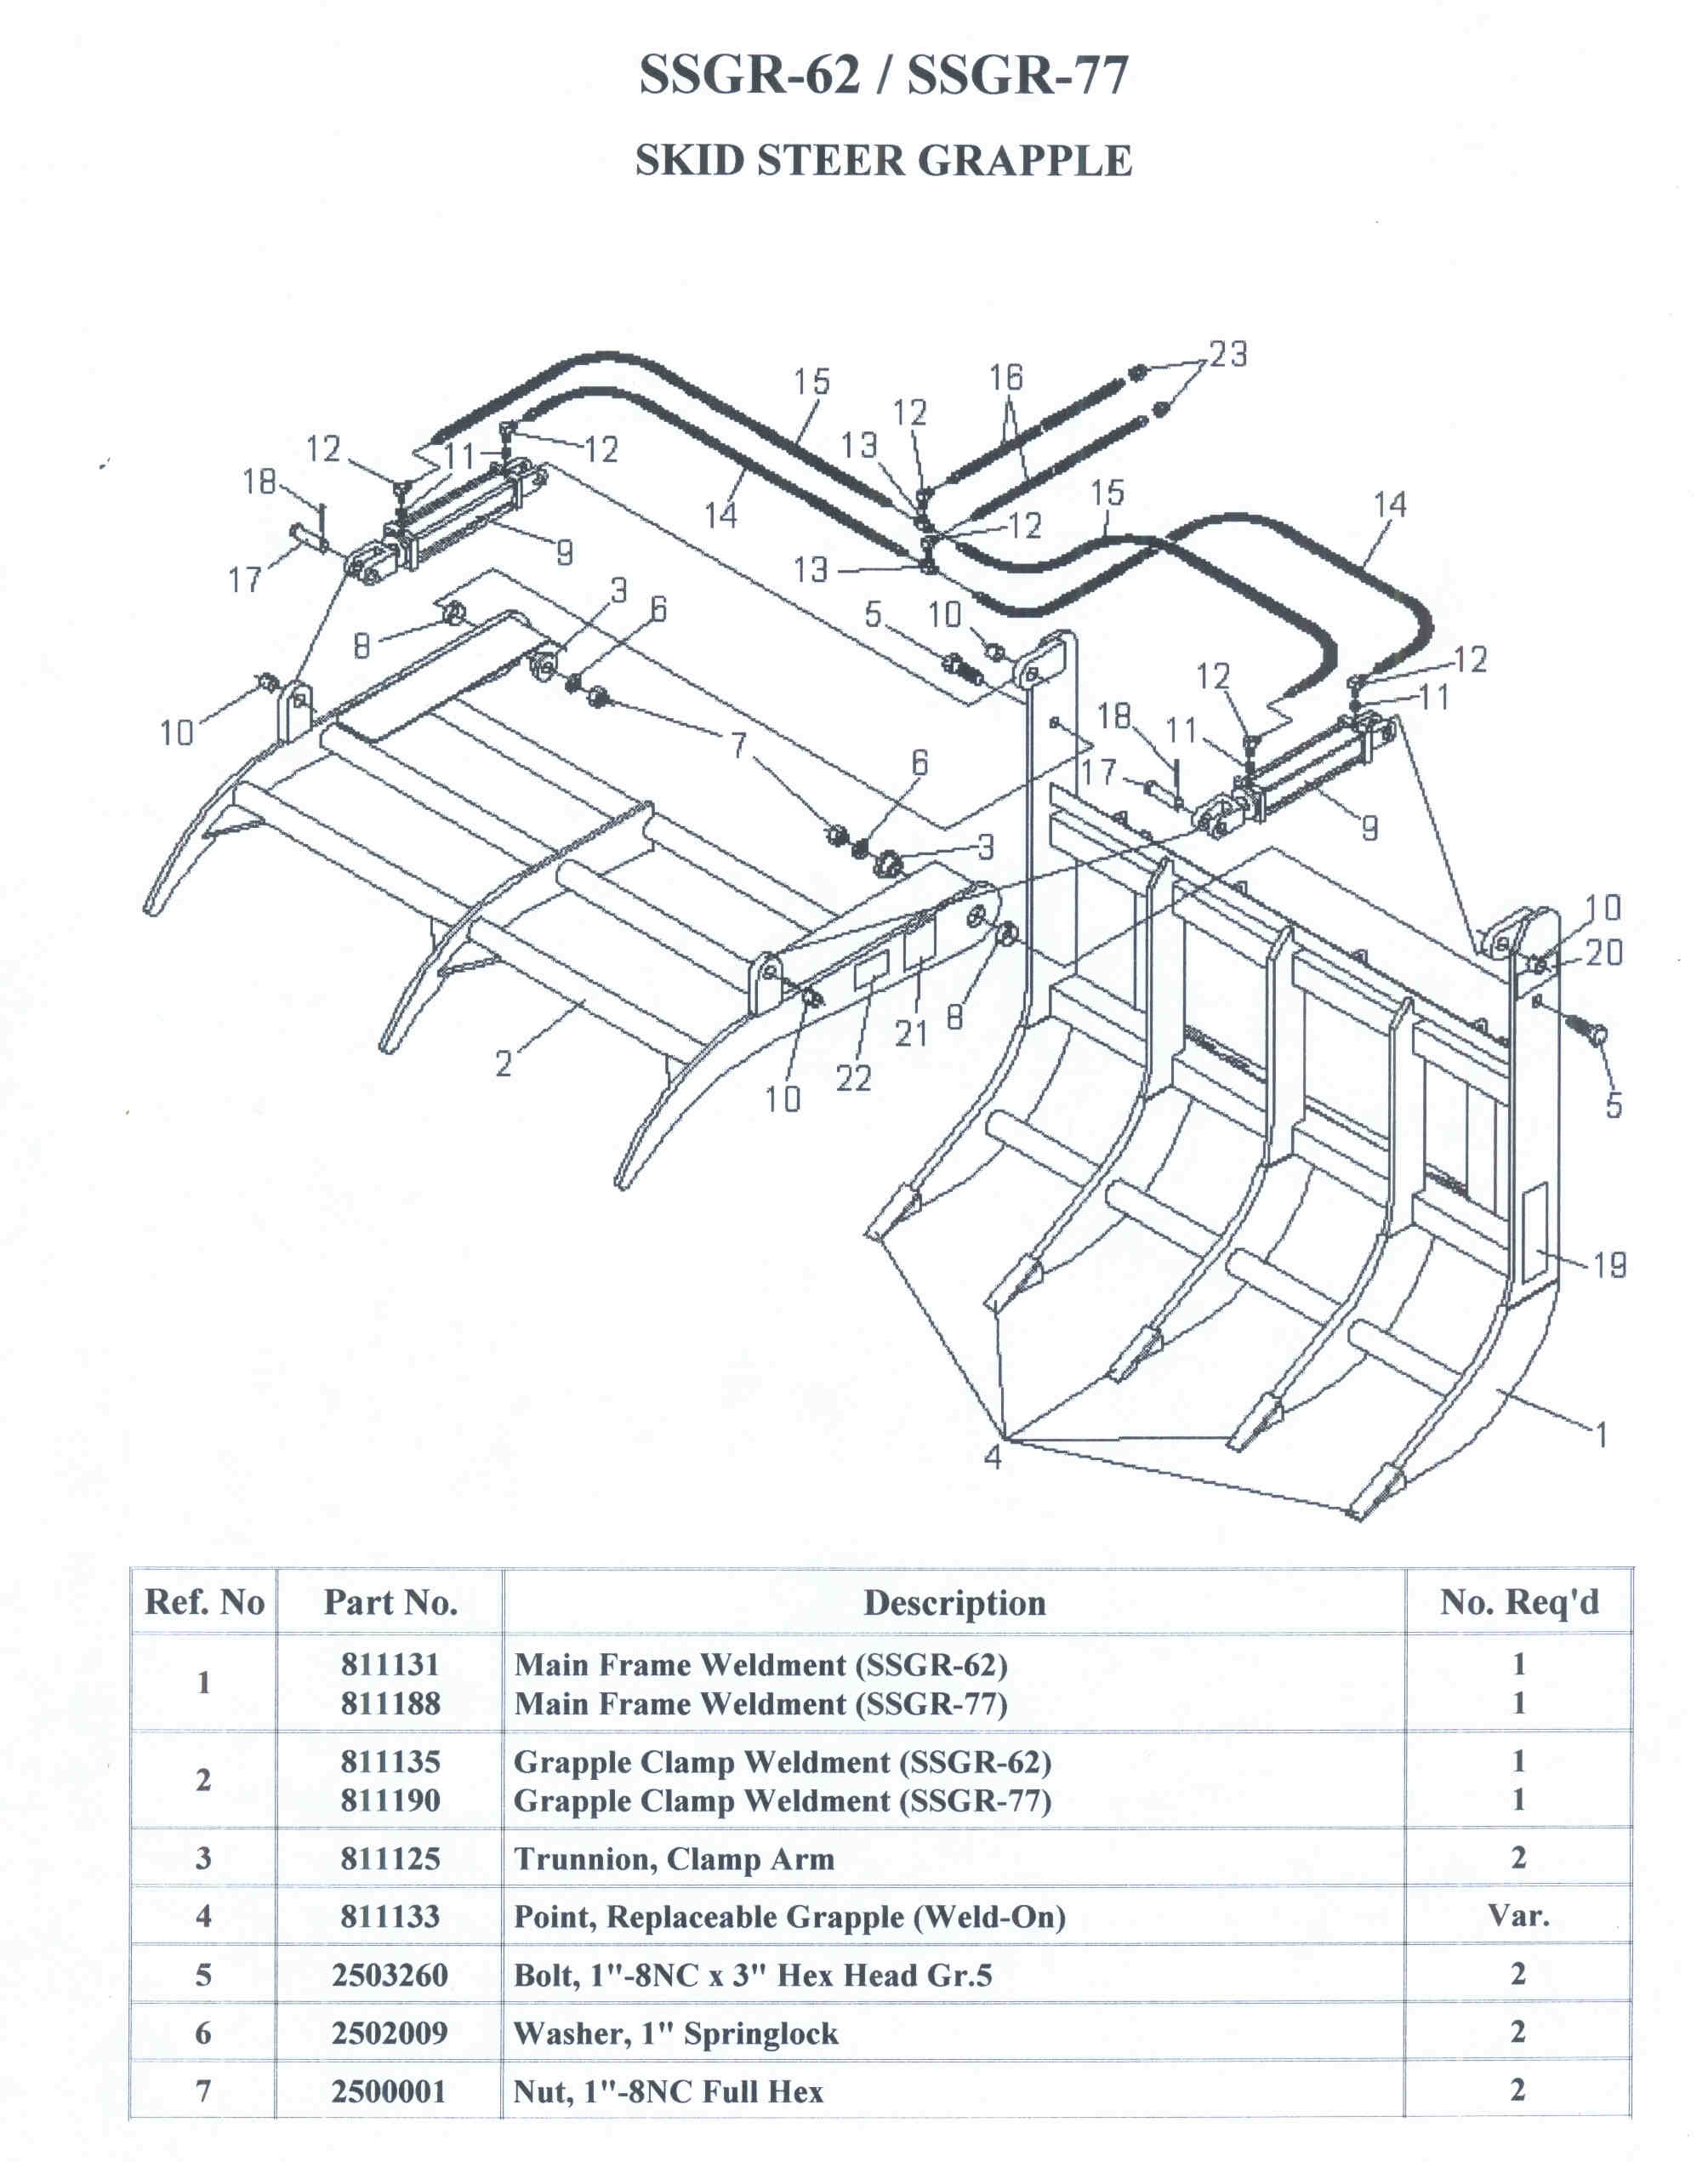 Exploded View Skid Steer Grapple Rakes